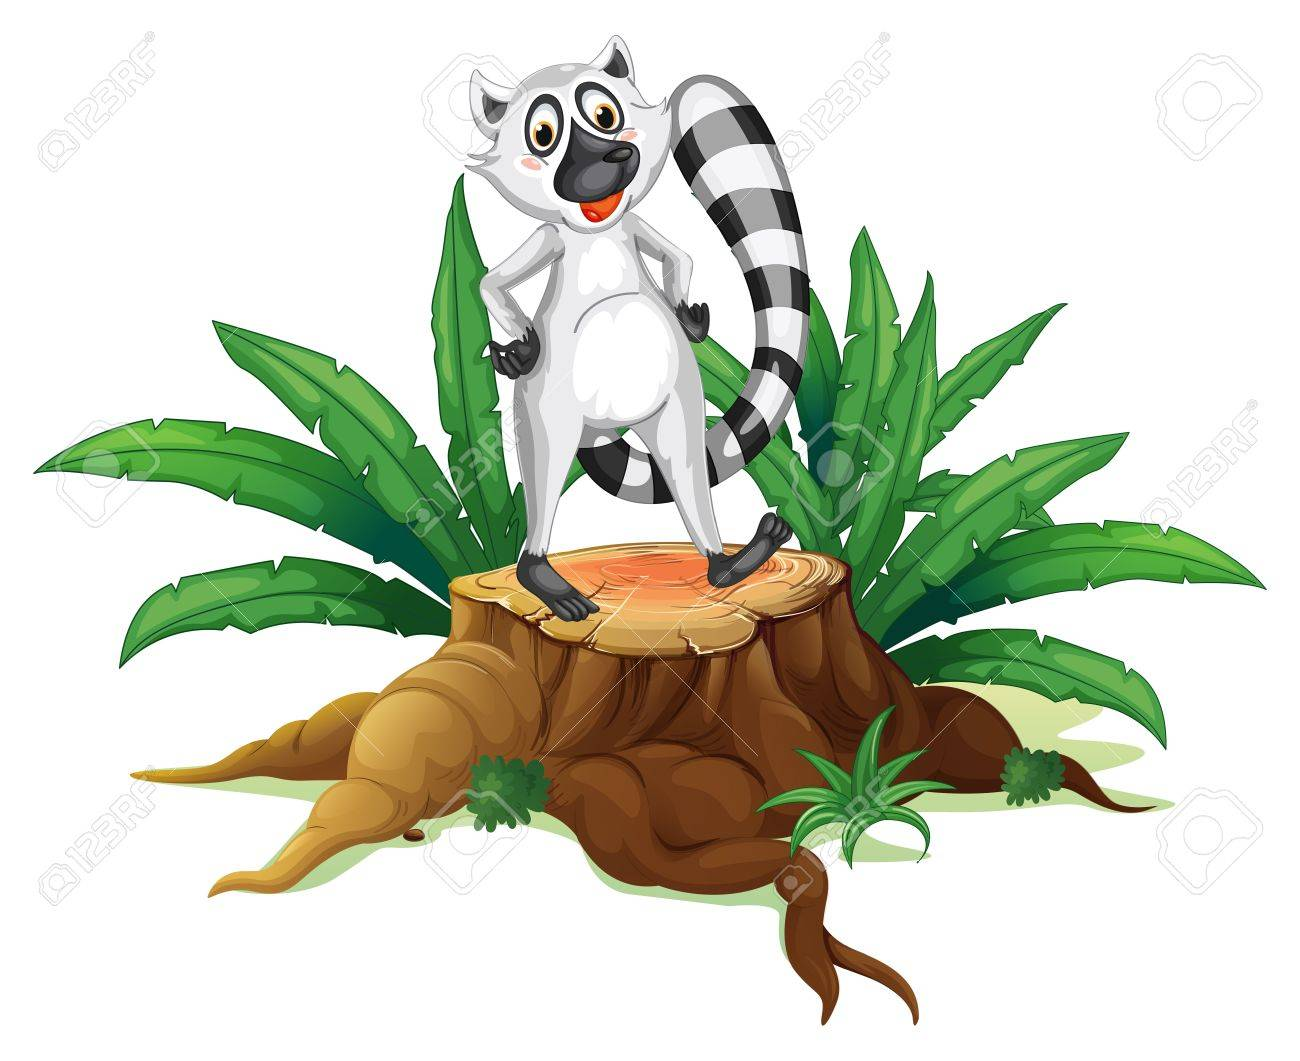 Illustration of a trunk with a lemur on a white background Stock Vector - 19302030